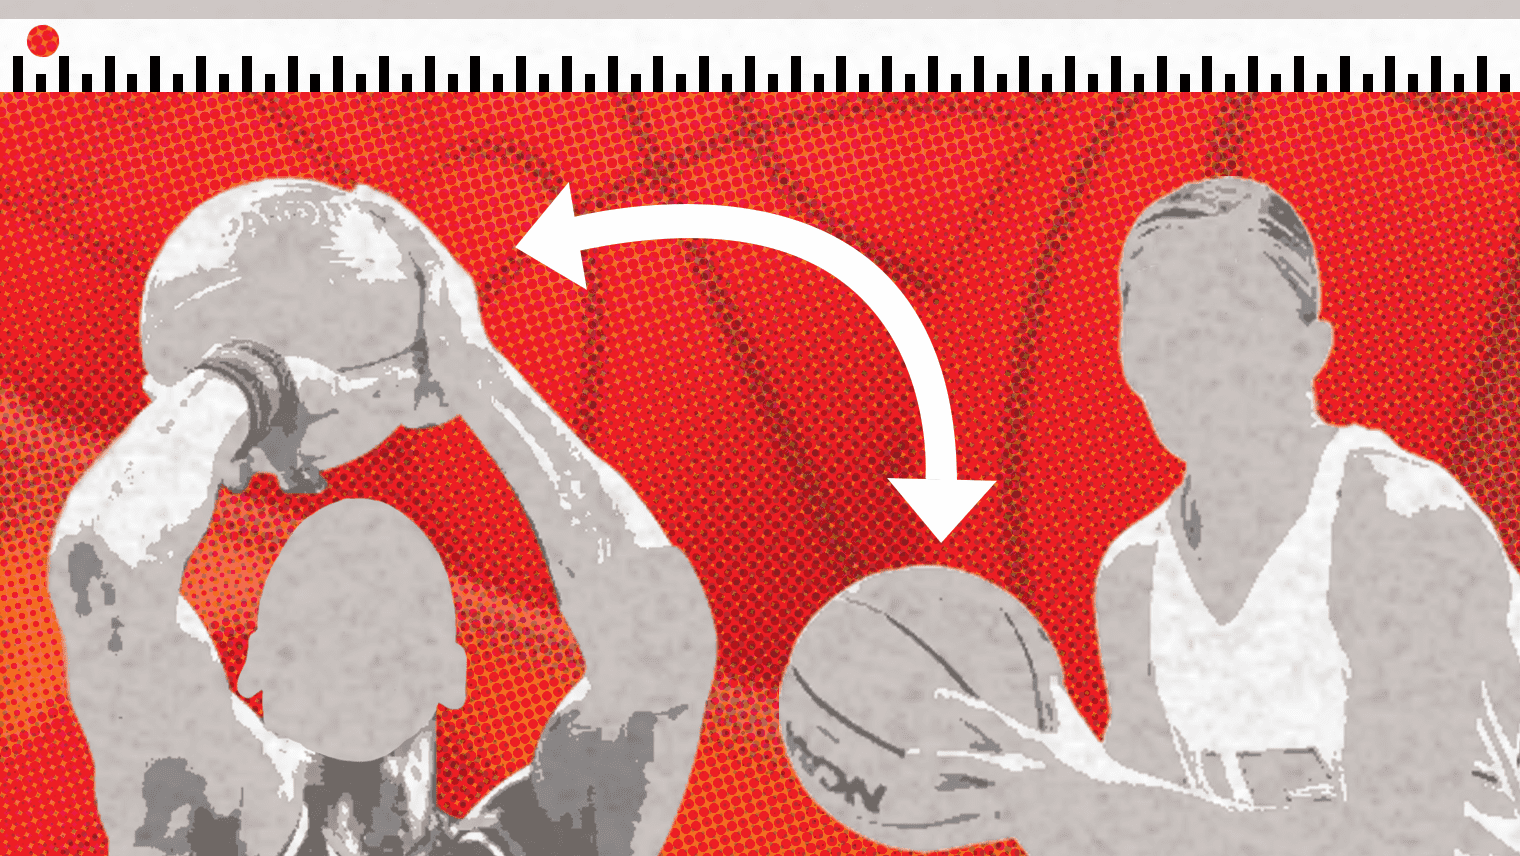 It's important to know your basketball size and use the proper ball for development, and depending on your age and gender, you'll need something different.